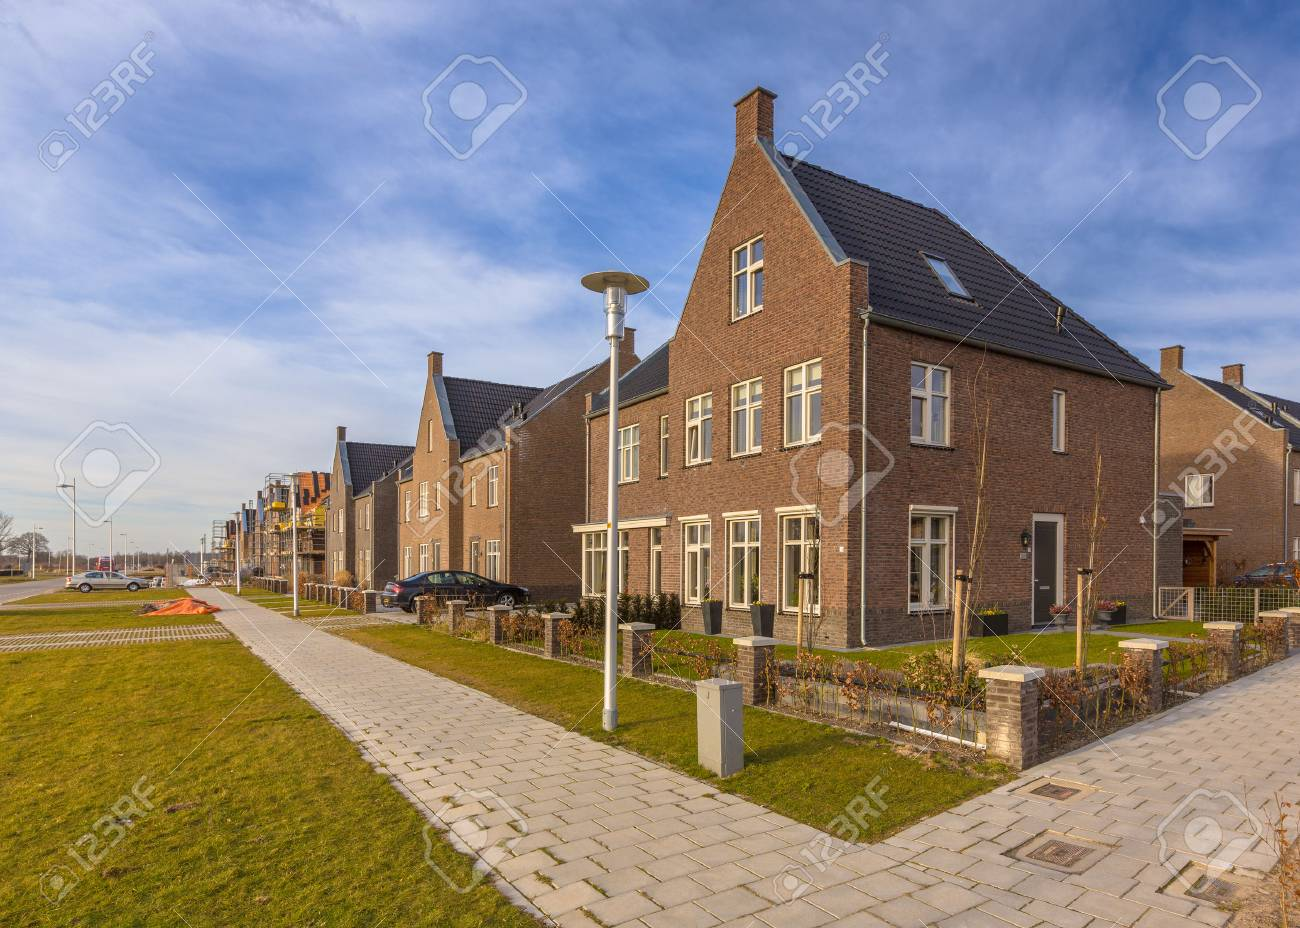 New completed young family houses on a residetial area in Randstad, Netherlands - 50767517